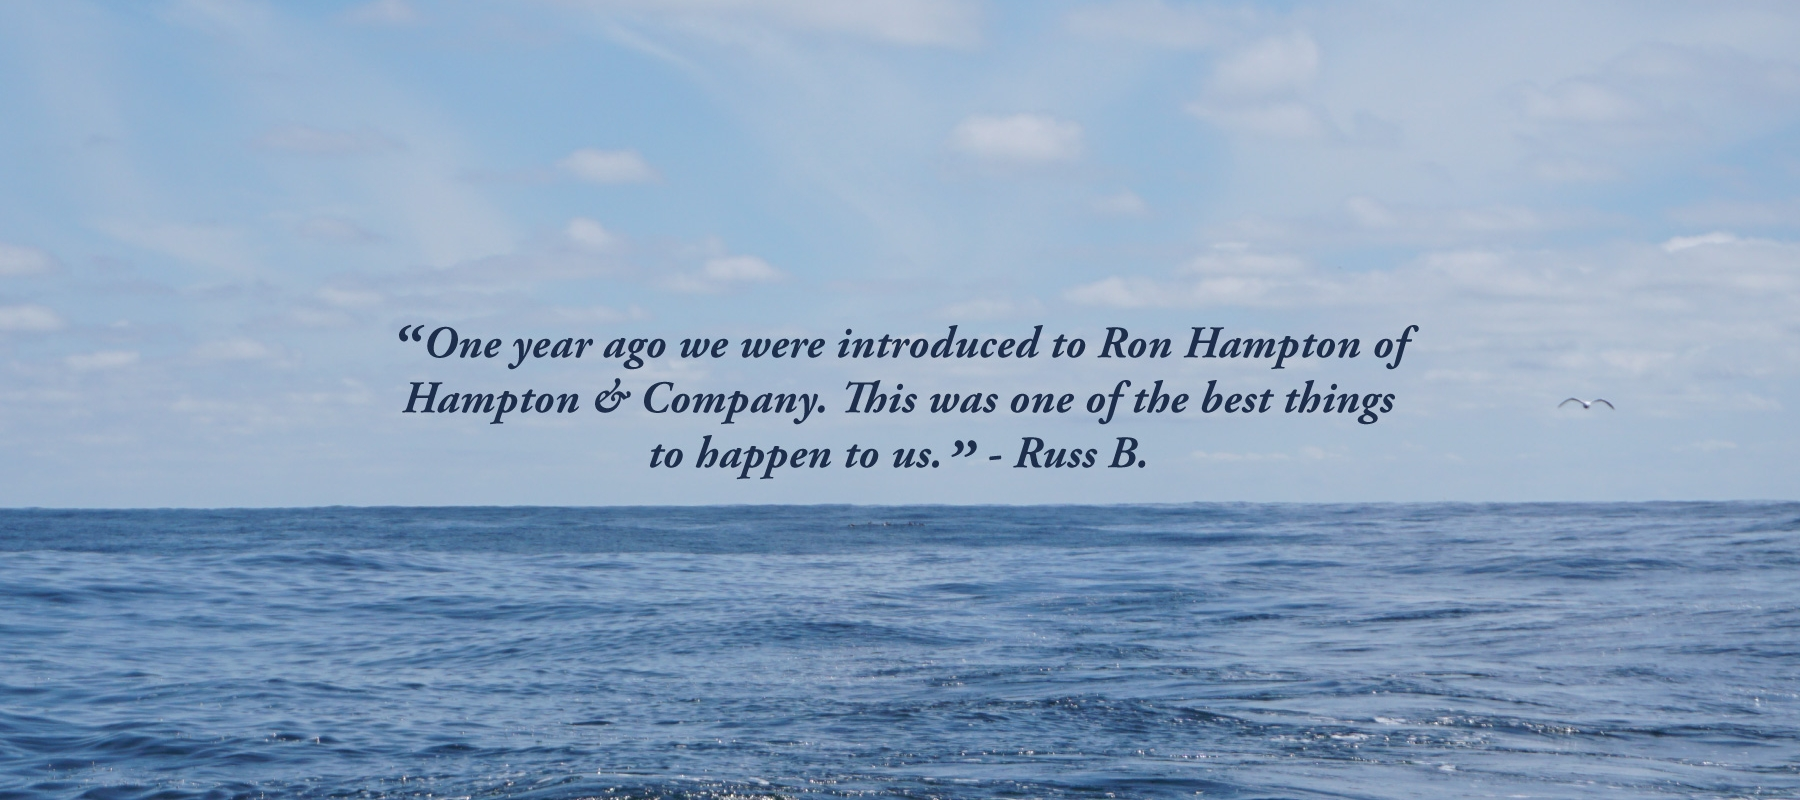 HamptonCo-Website-Banner-Testimonials-02.jpg